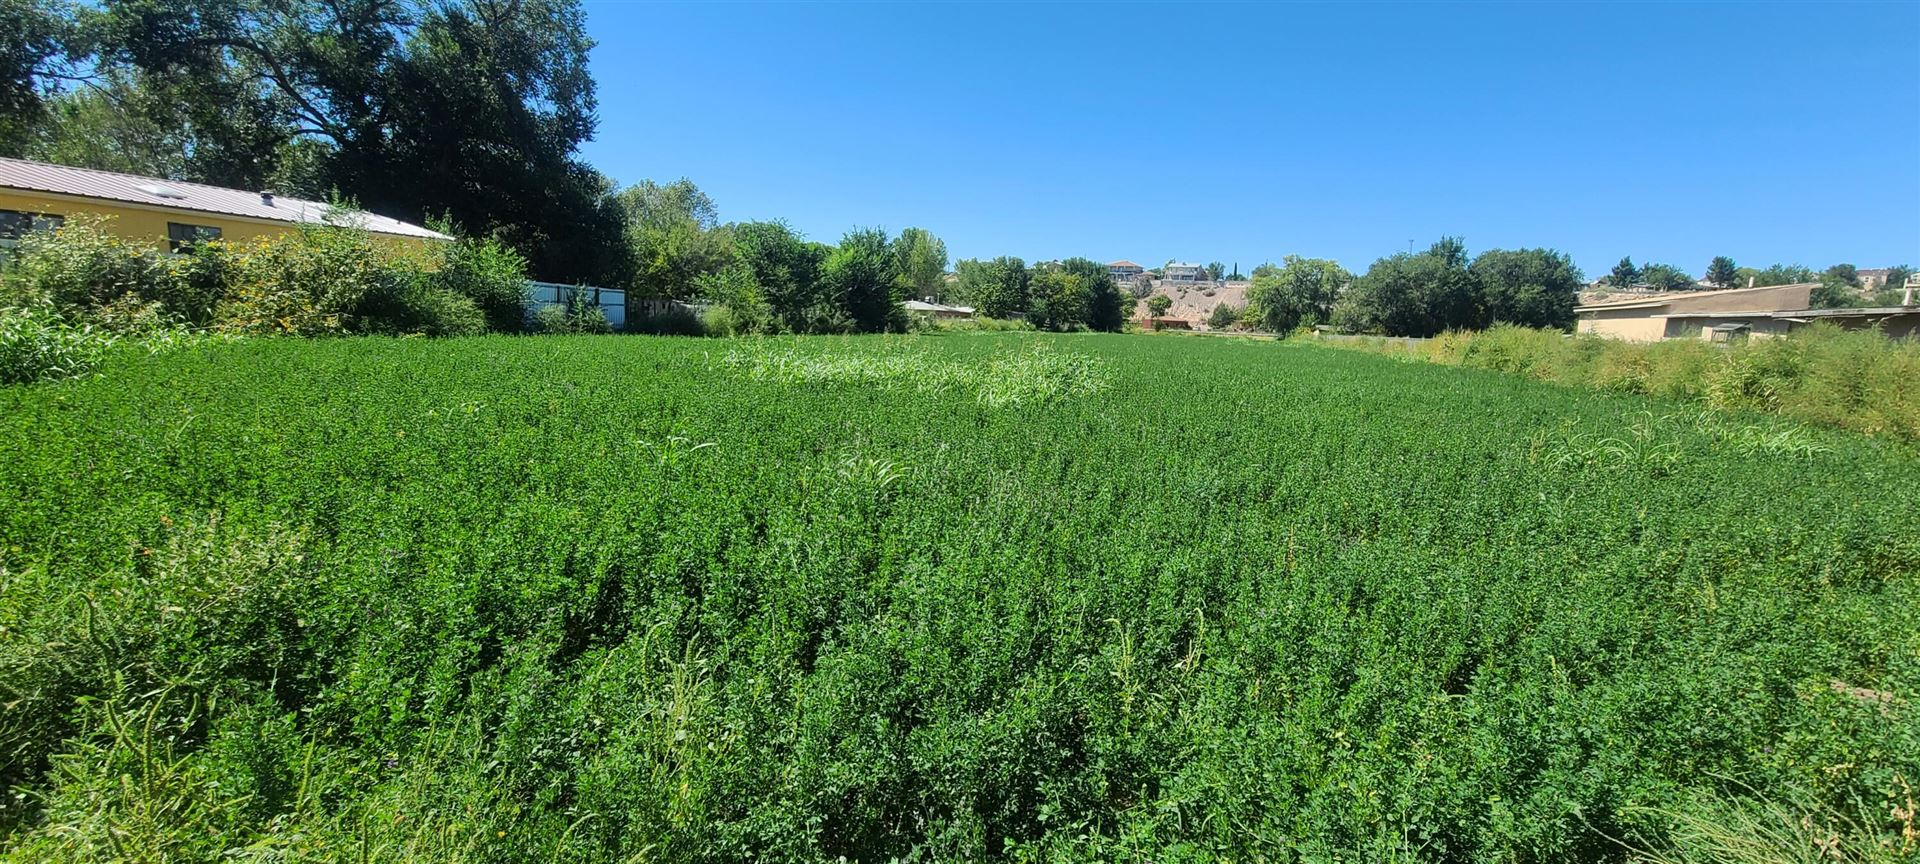 Photo for FOOTHILL Drive SW, Albuquerque, NM 87105 (MLS # 1001790)